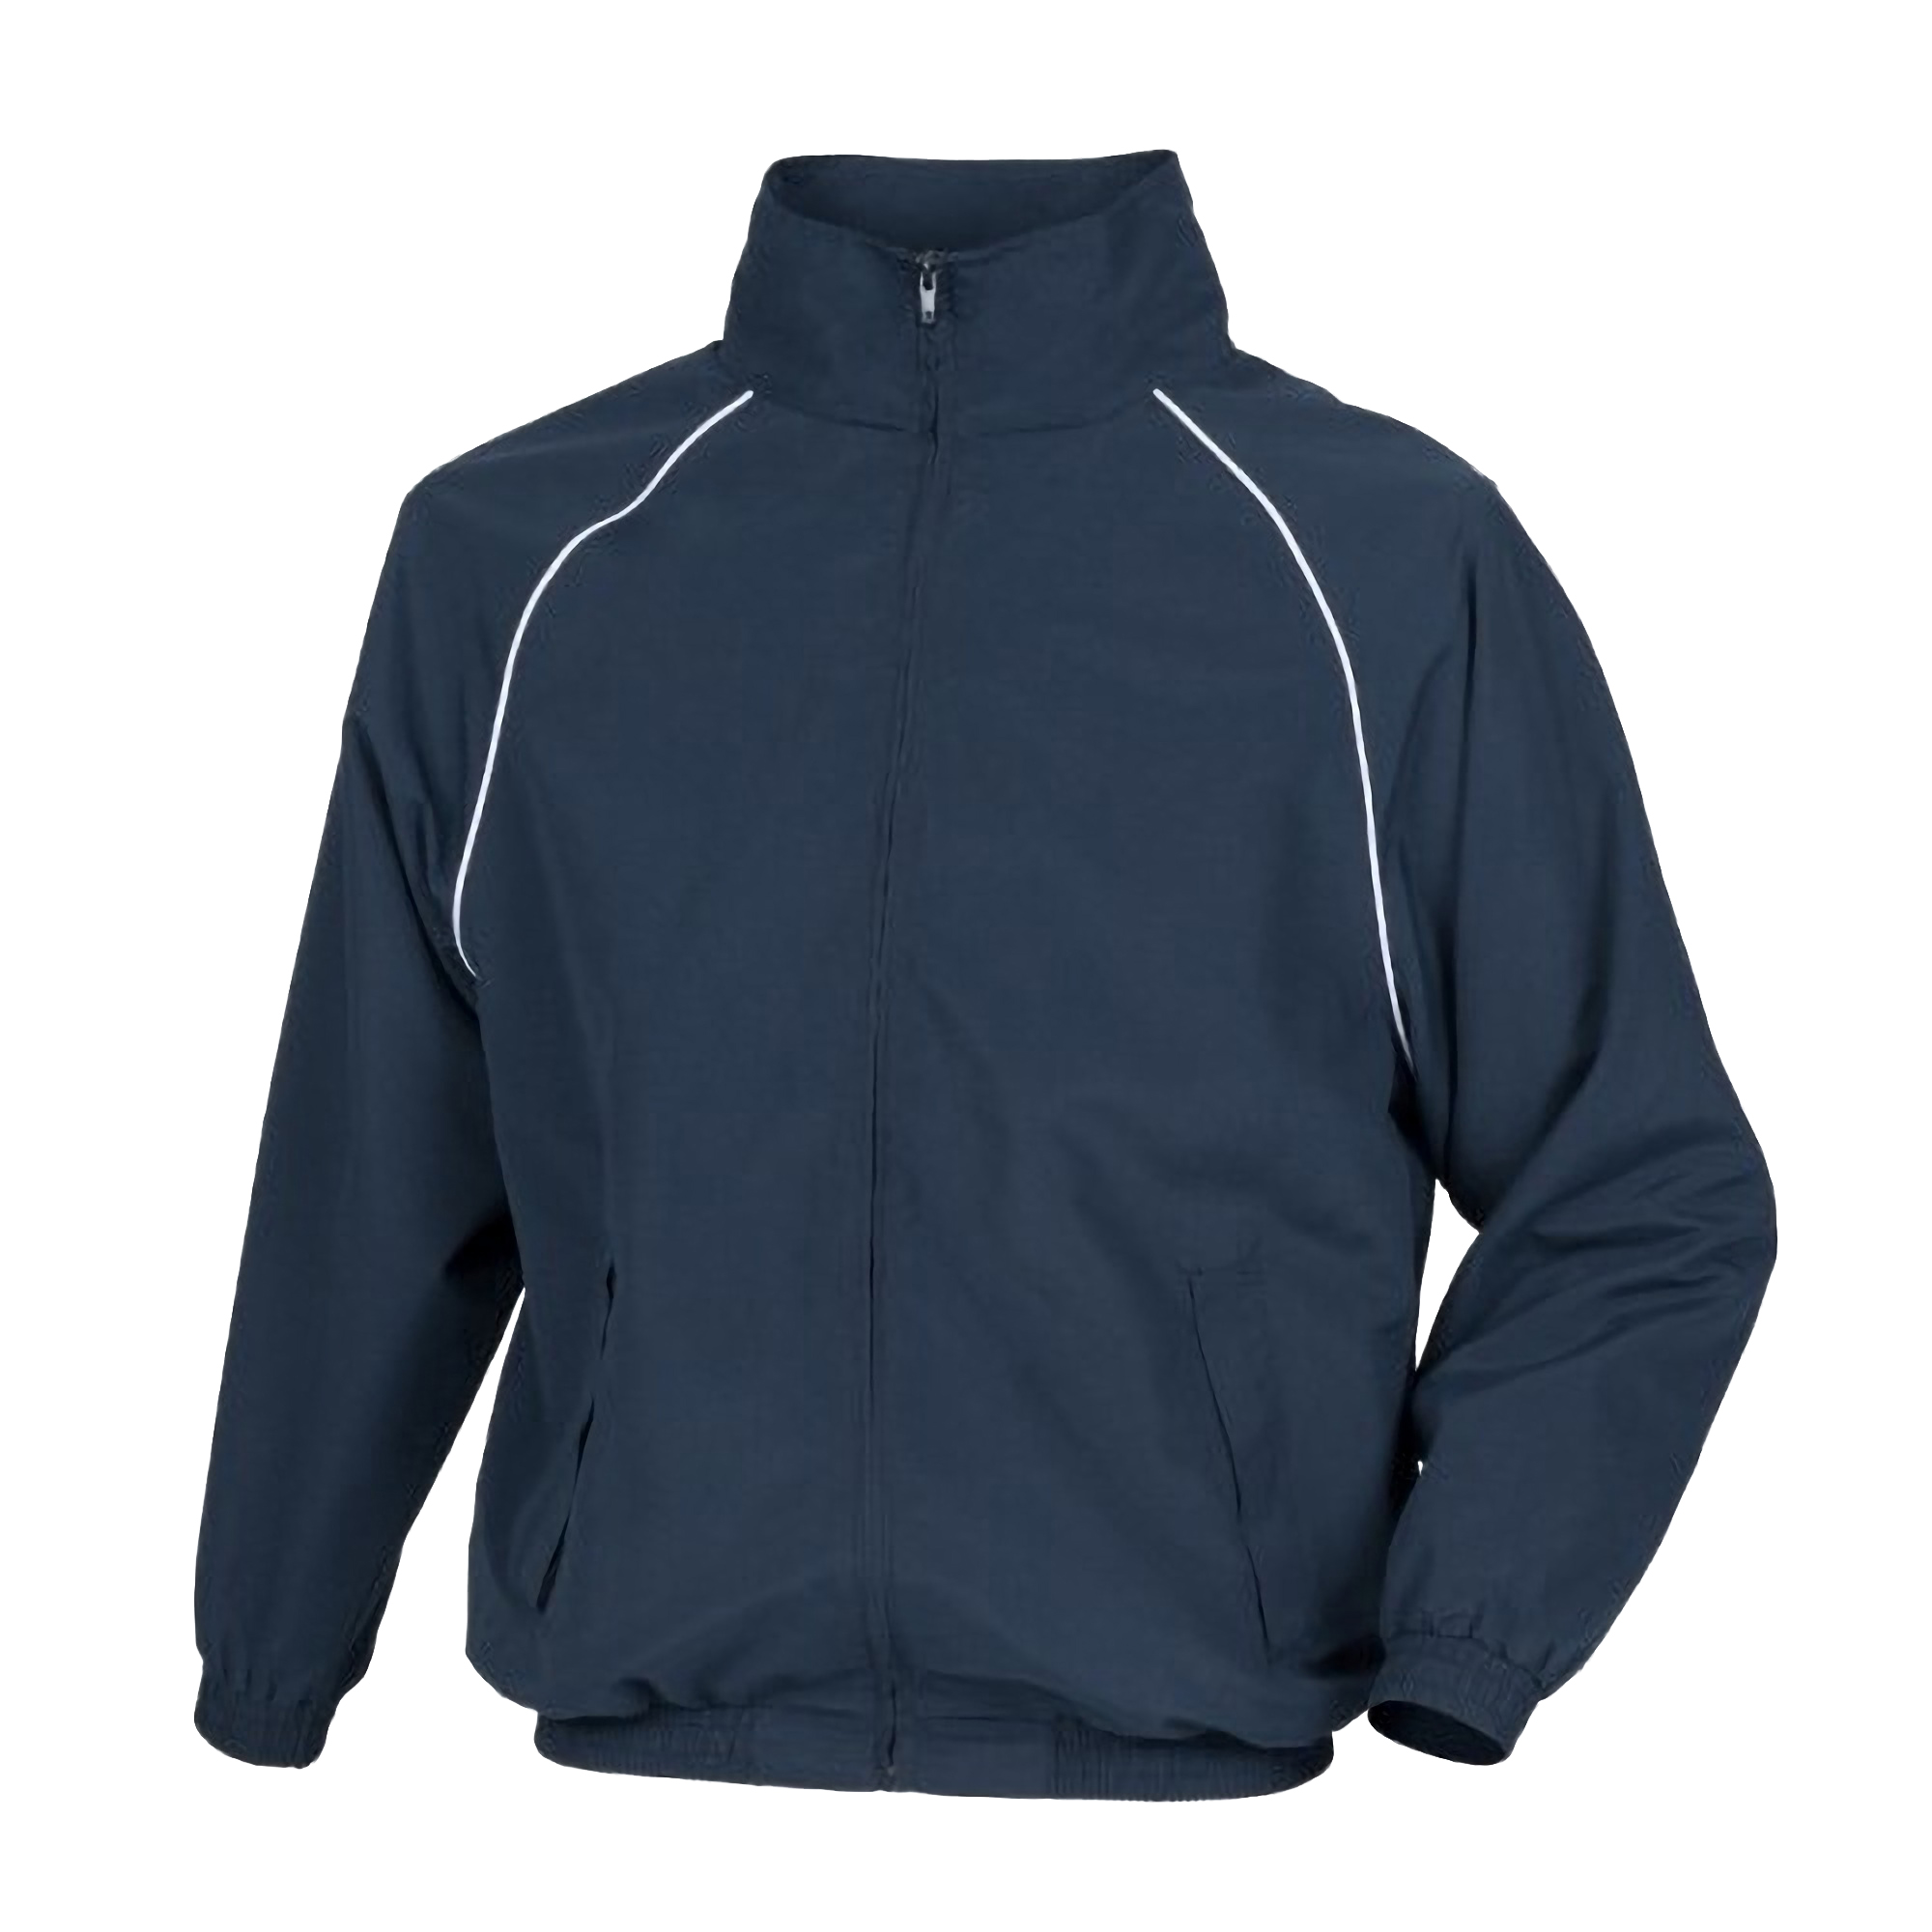 Tombo Mens Teamsport Start Line Sports Training Track Jacket (XL) (Navy/ White piping)